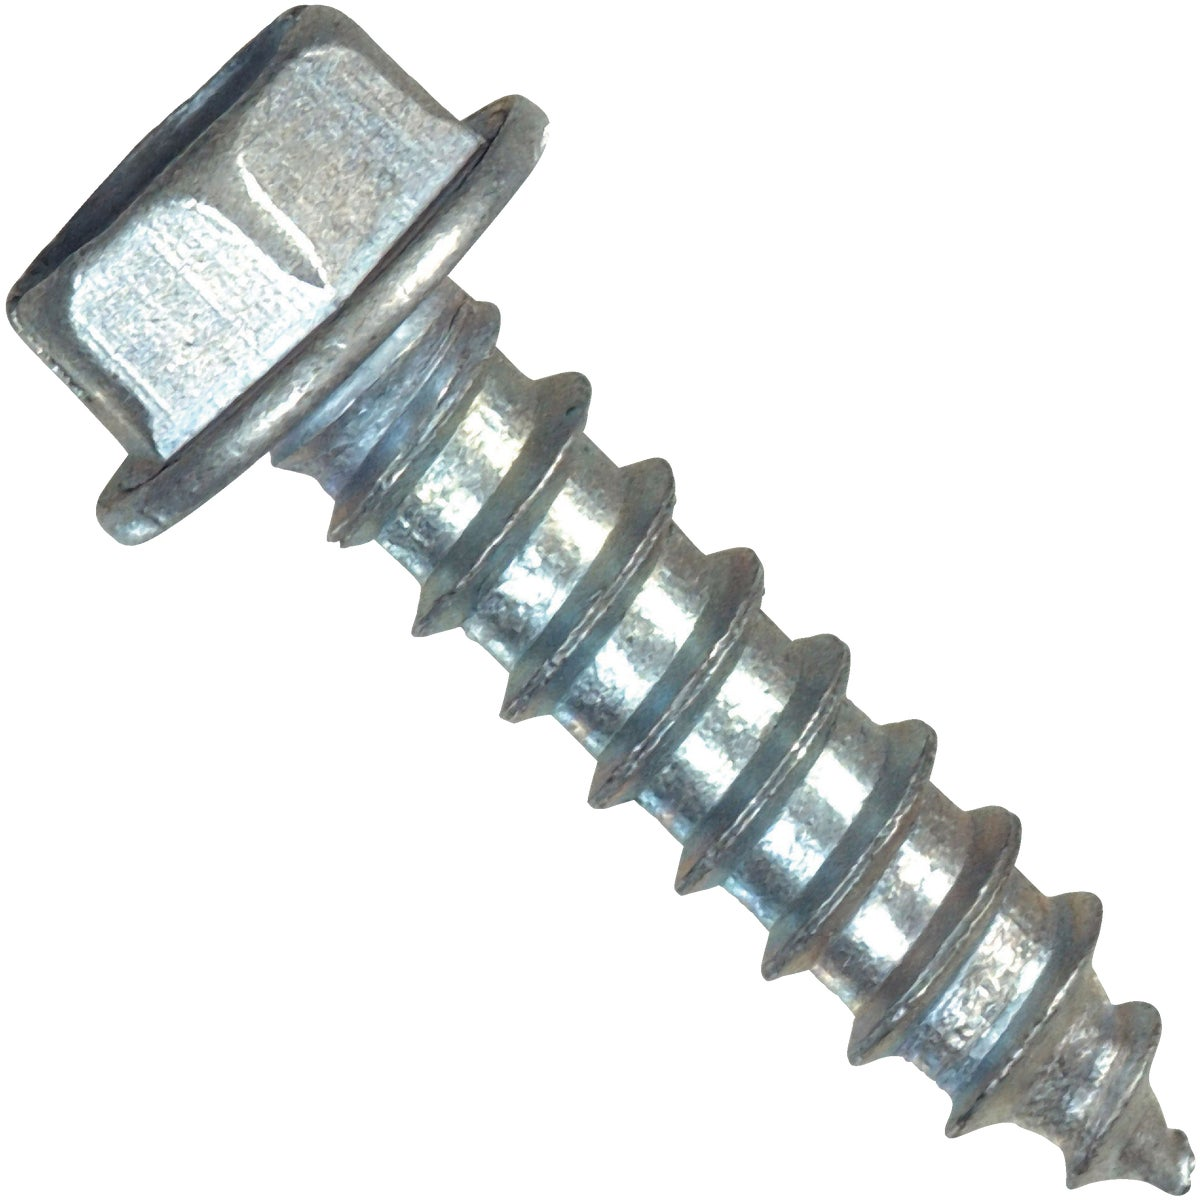 12X1 HWH SHT MTL SCREW - 70316 by Hillman Fastener